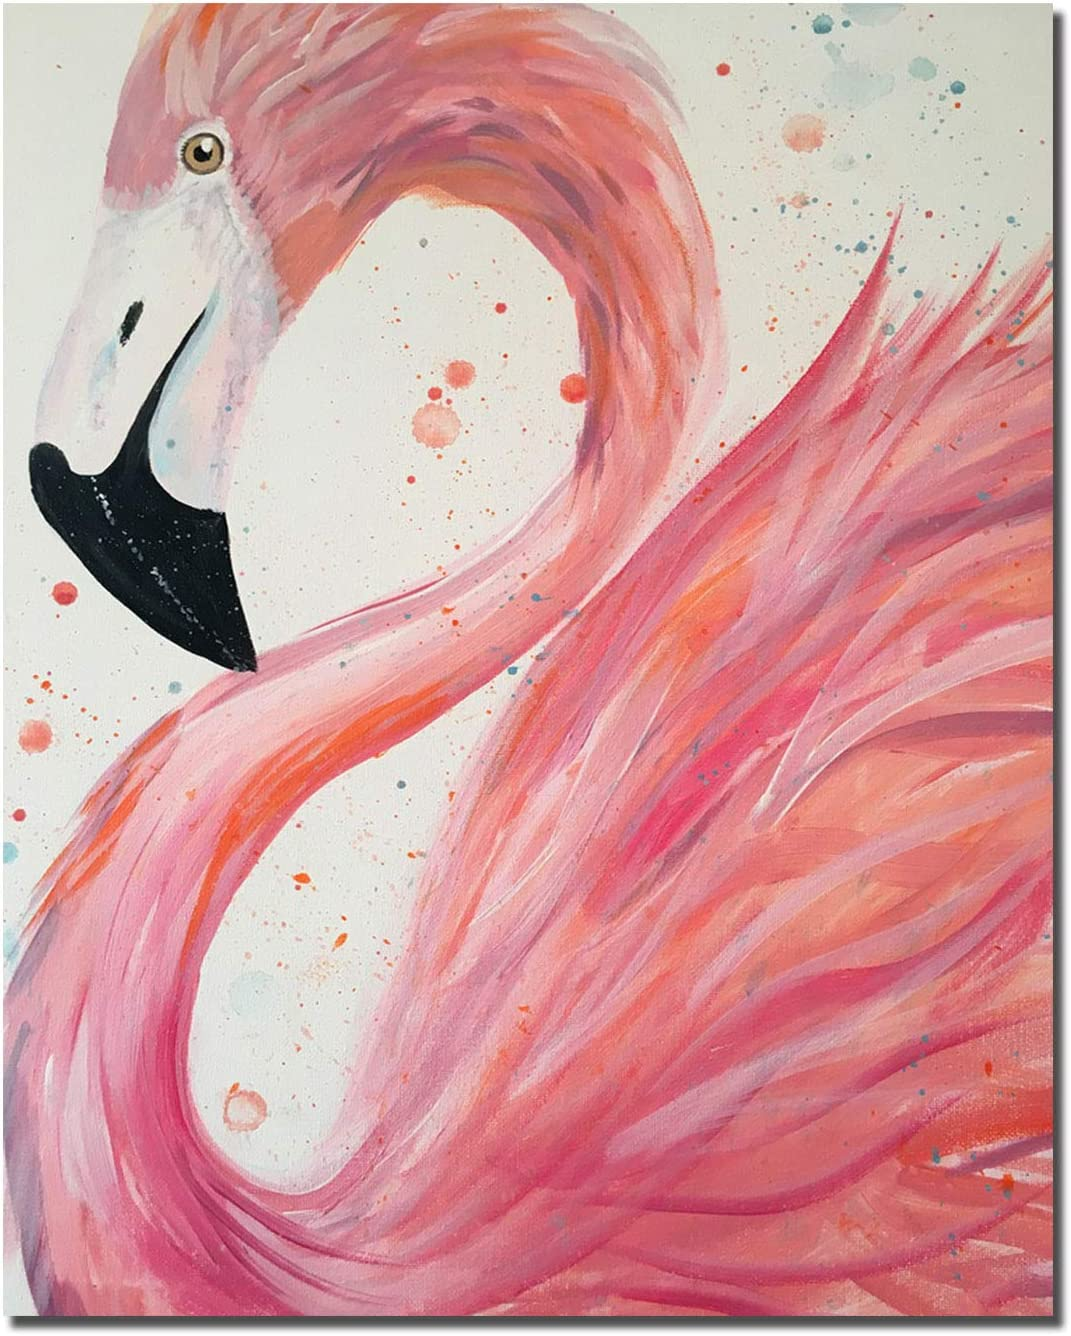 HVEST Flamingo Canvas Wall Art Pink Bird Framed Oil Painting Stretched and Framed Artsy Romantic Wall Paintings Girlfriend Gift for Living Room Bedroom Bathroom Office Wall Decor 12x16 inches